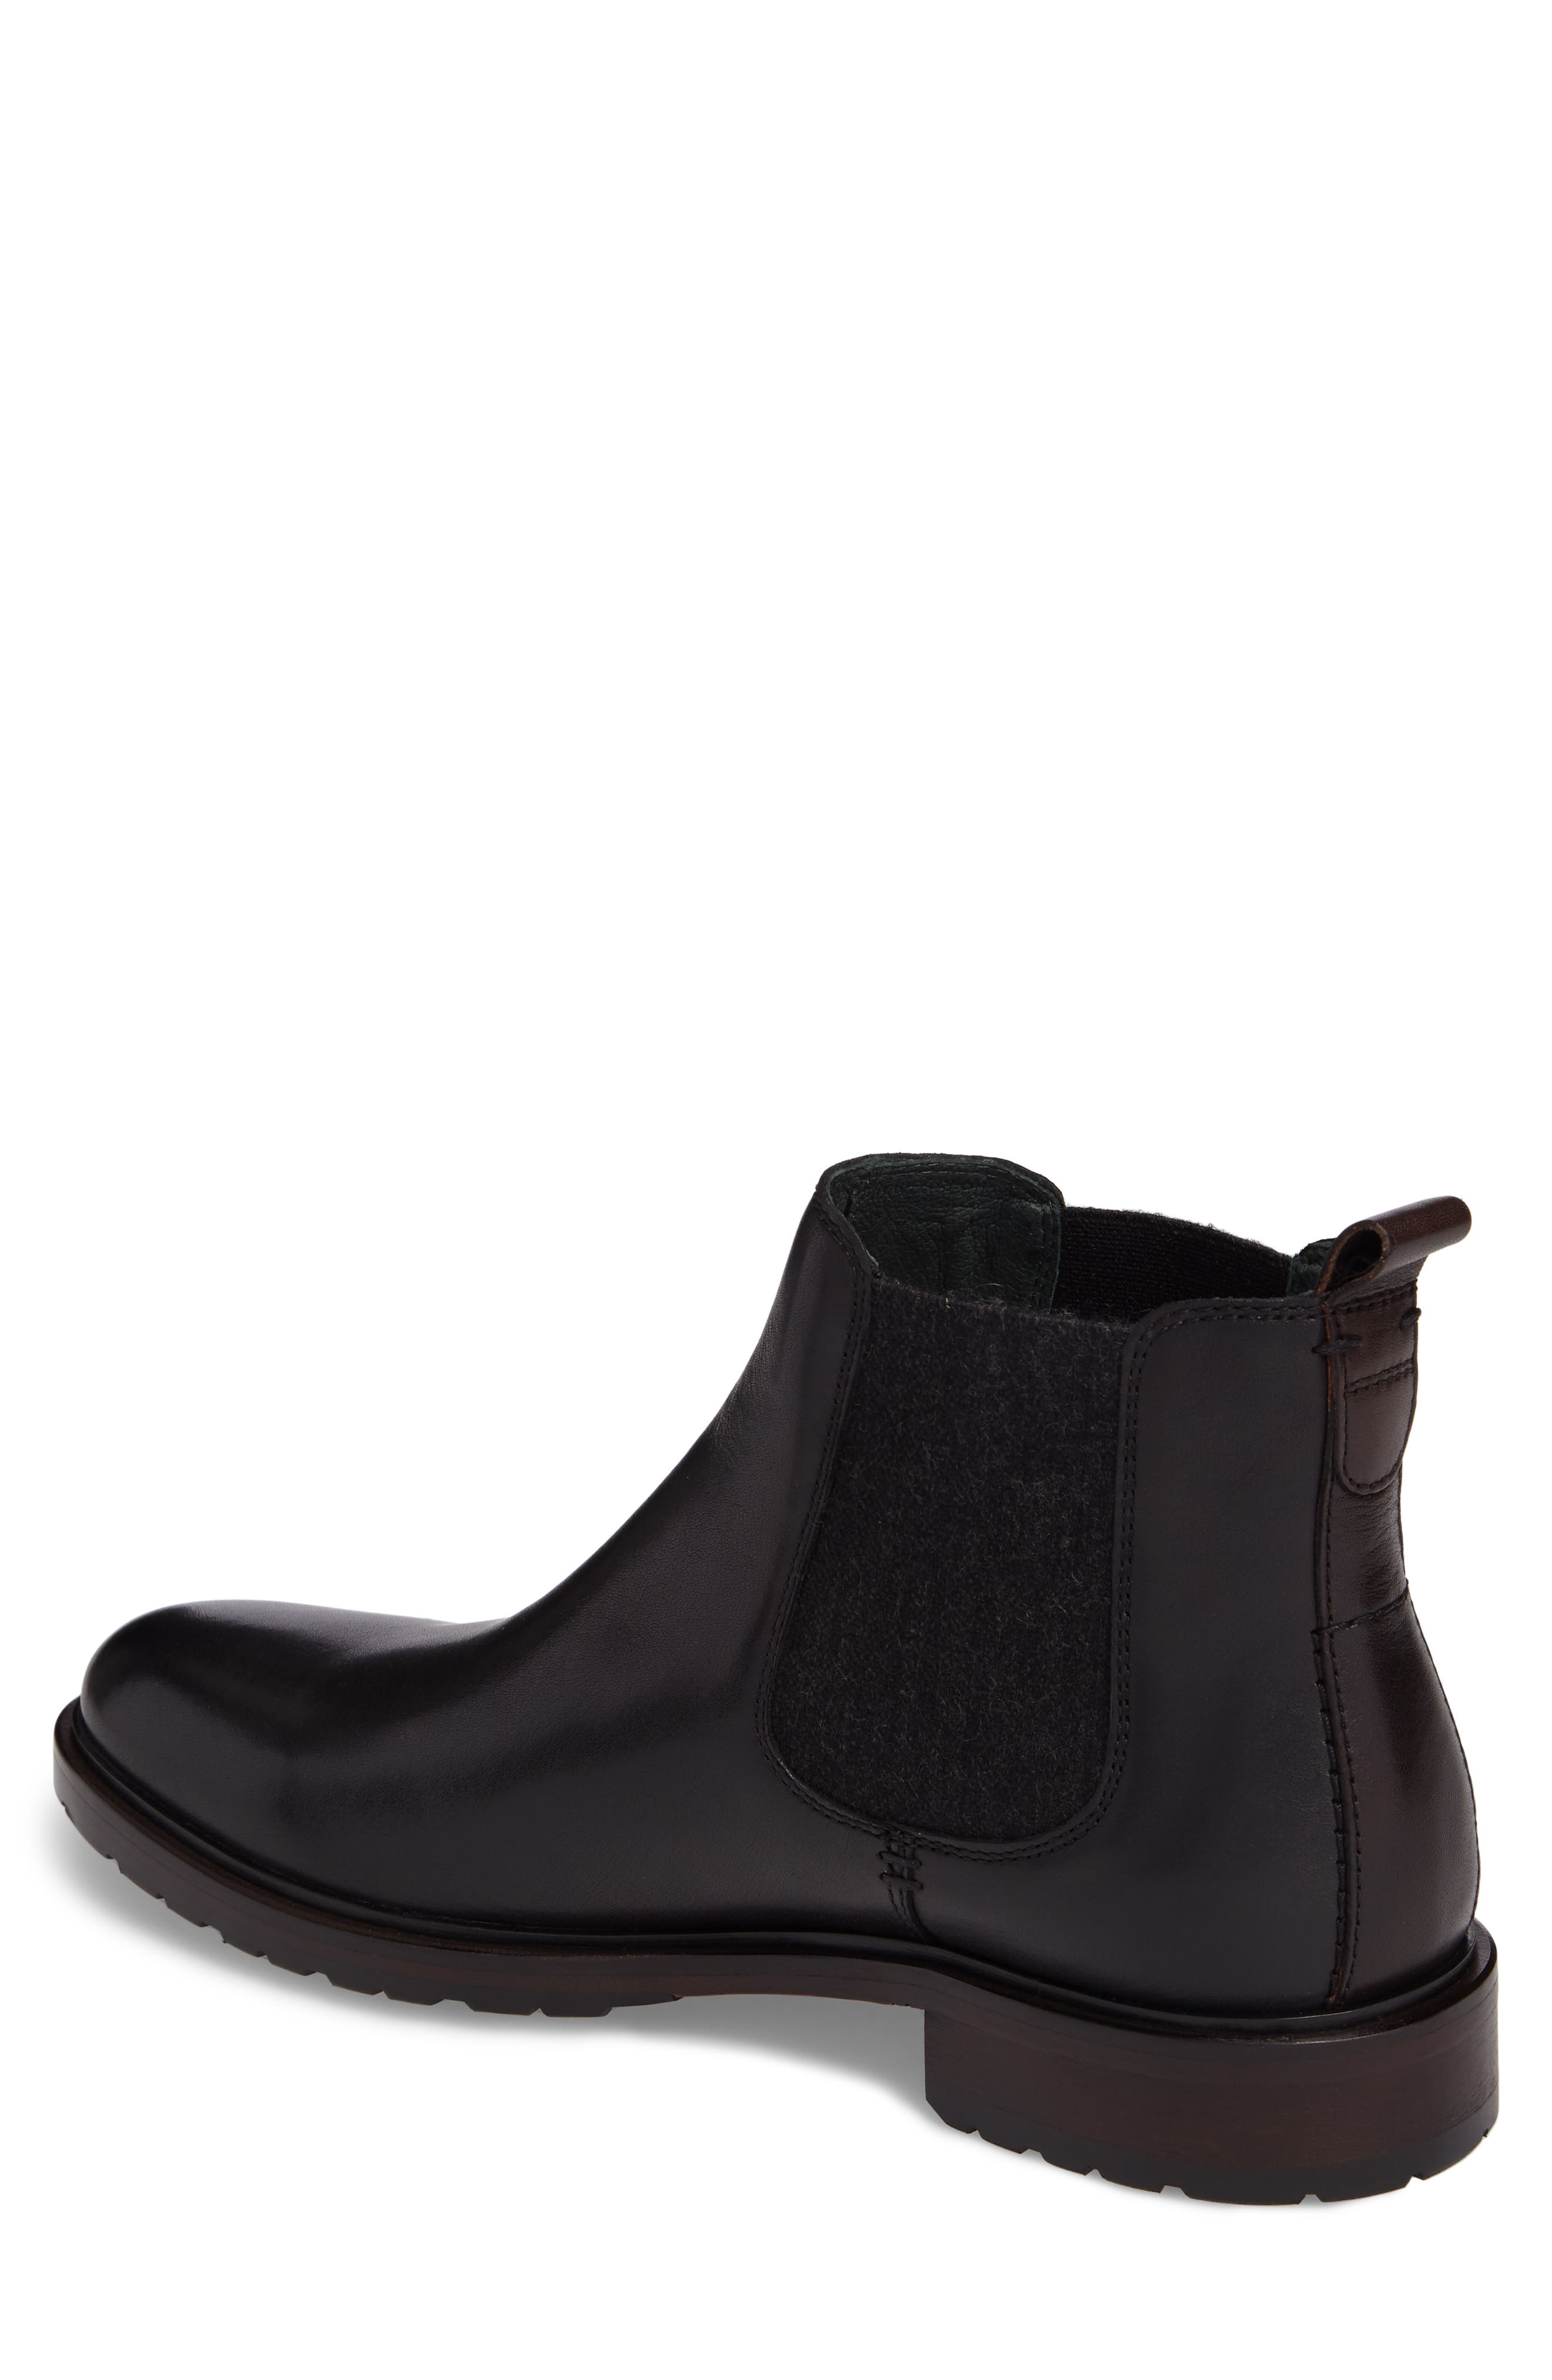 Myles Chelsea Boot,                             Alternate thumbnail 2, color,                             001